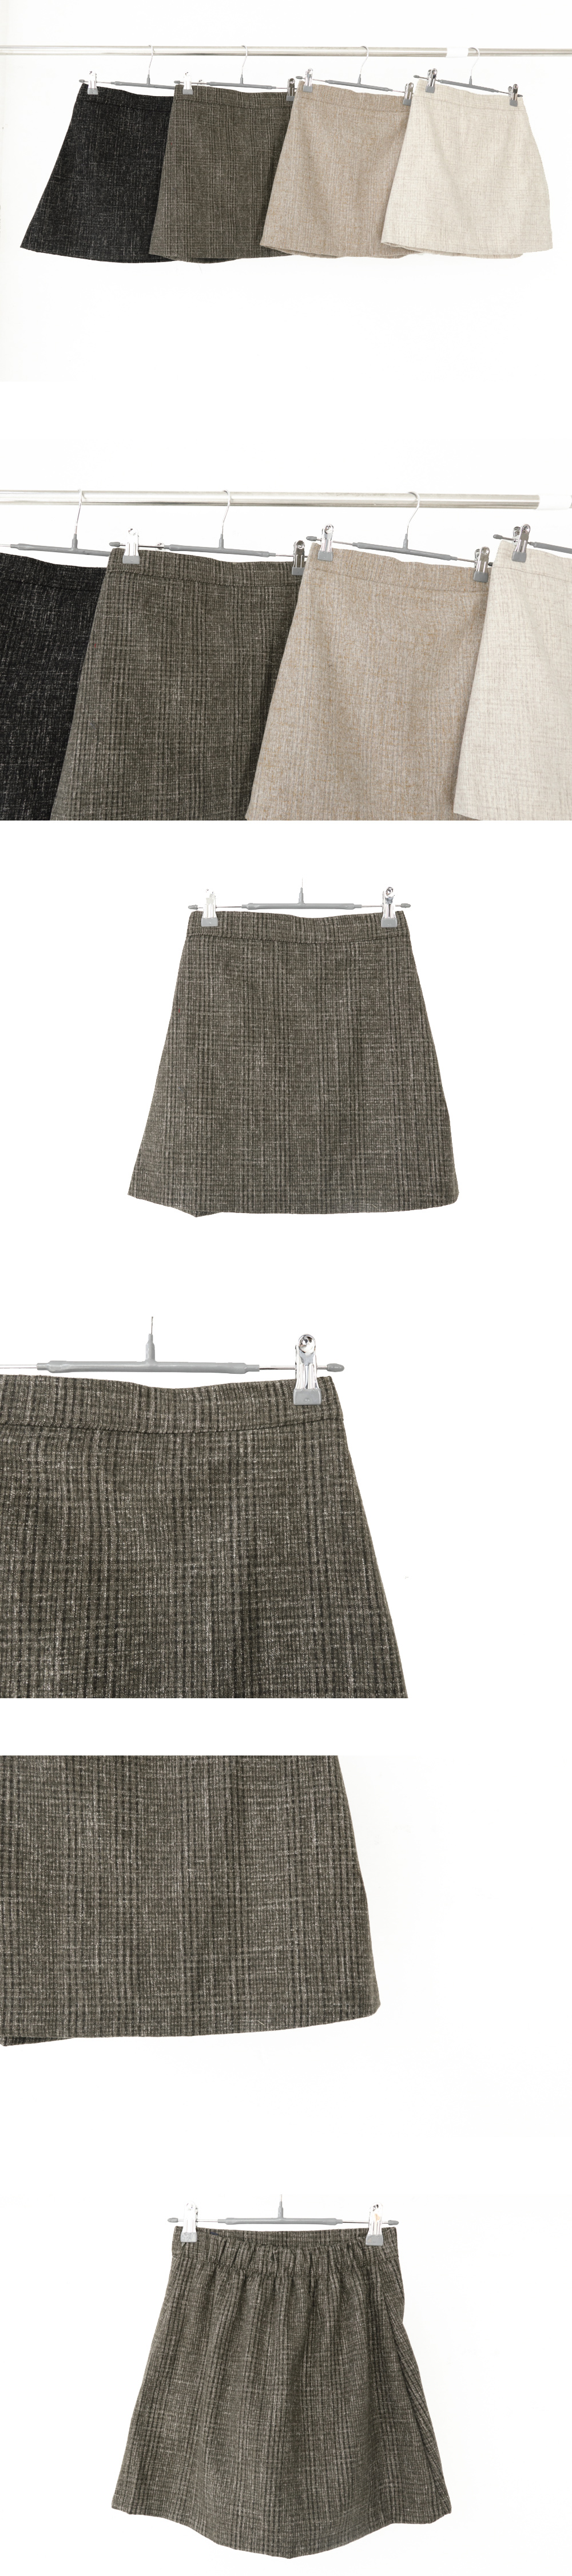 Gela pager skirt